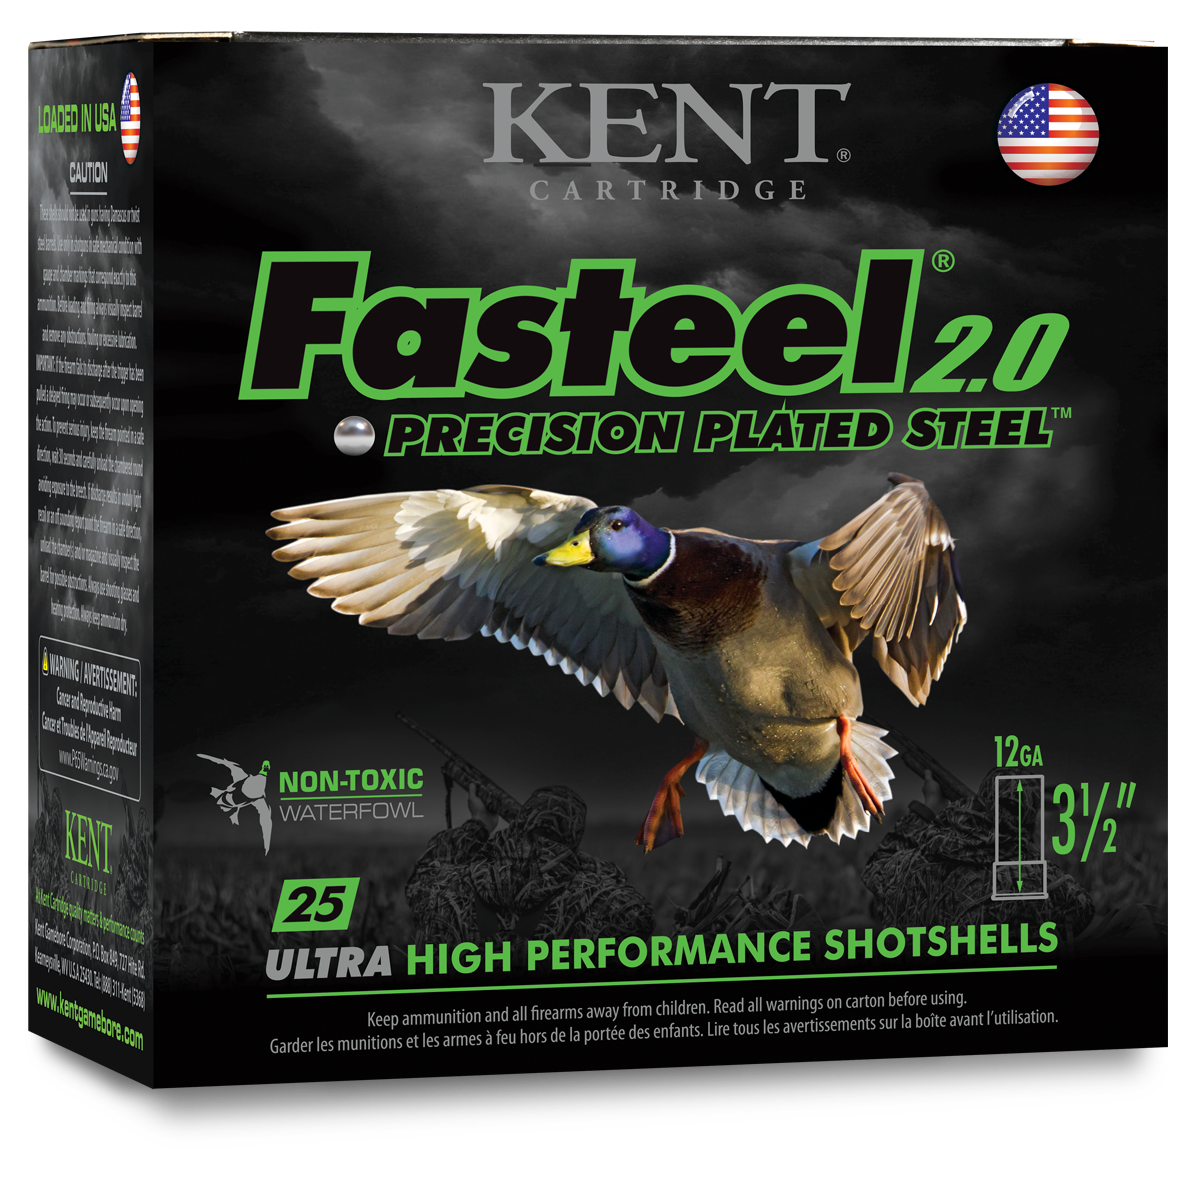 Kent Cartridge Fasteel 2.0 Waterfowl Ammunition 12 Gauge 3-1/2